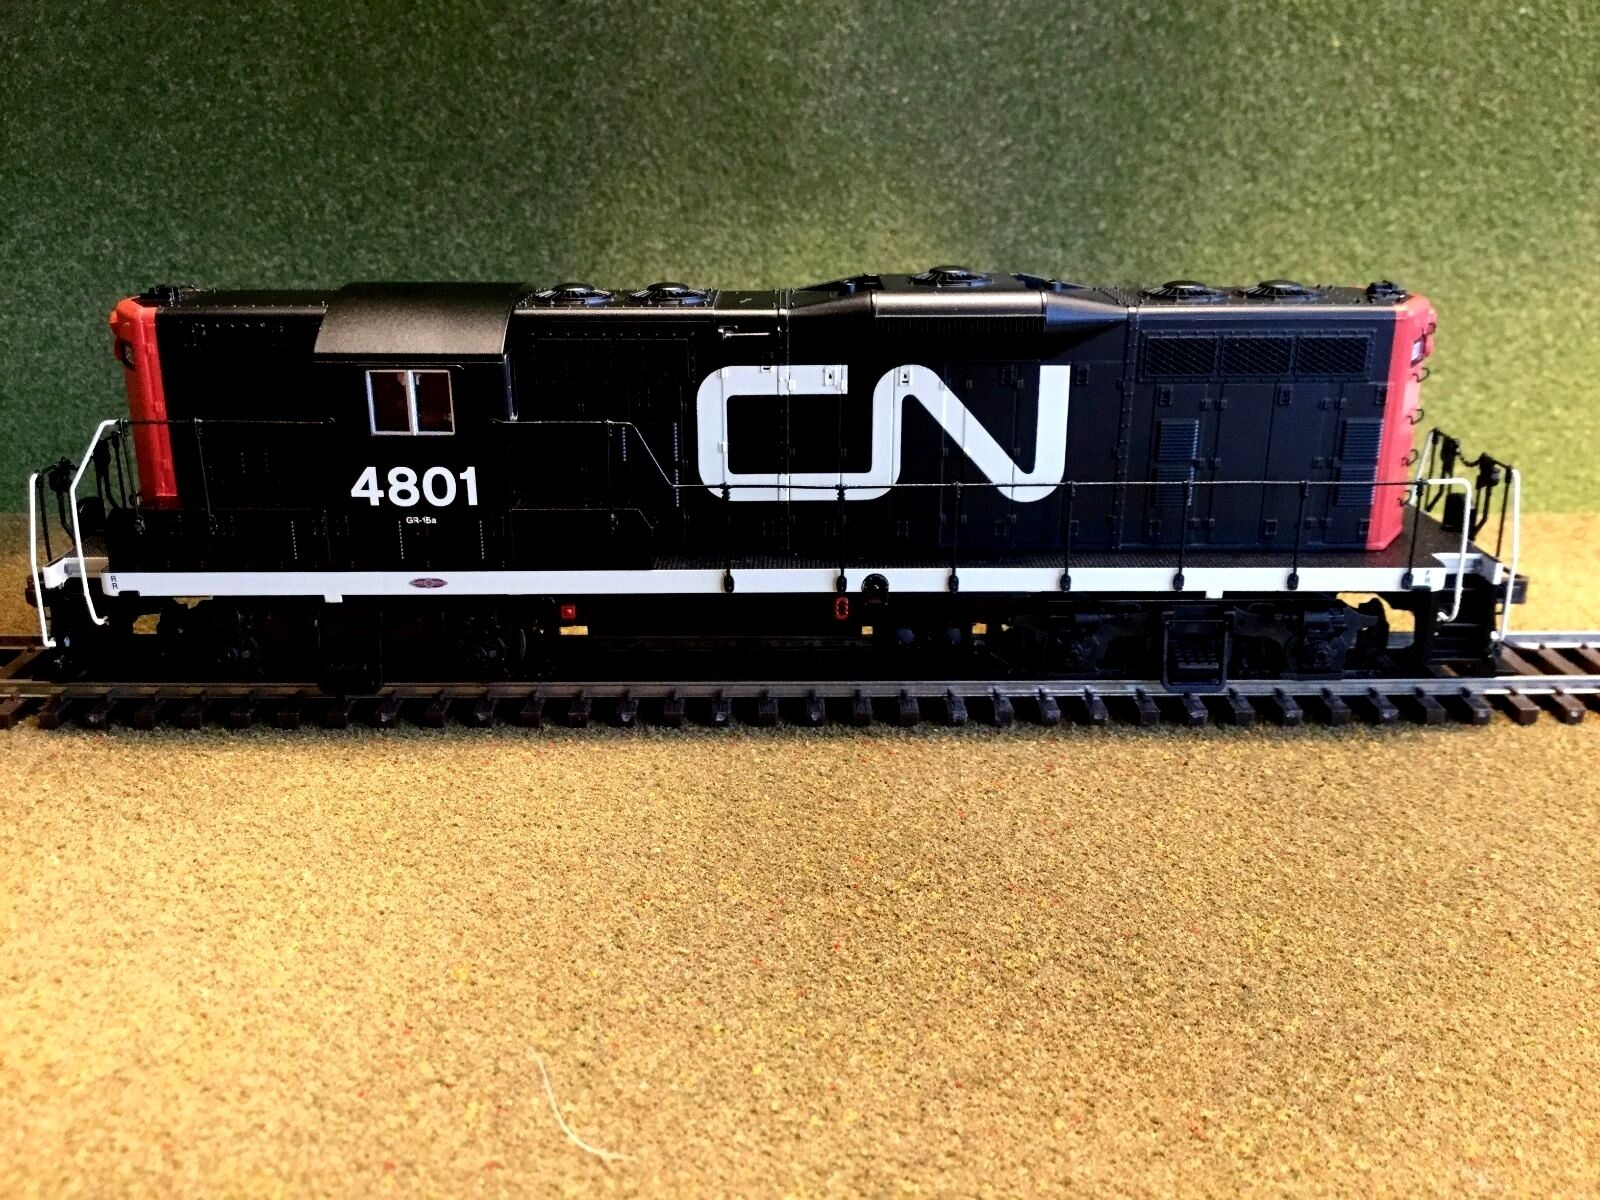 ATLAS 1 87 HO SCALE CANADIAN NATIONAL GP-7 RD DCC & SOUND F S